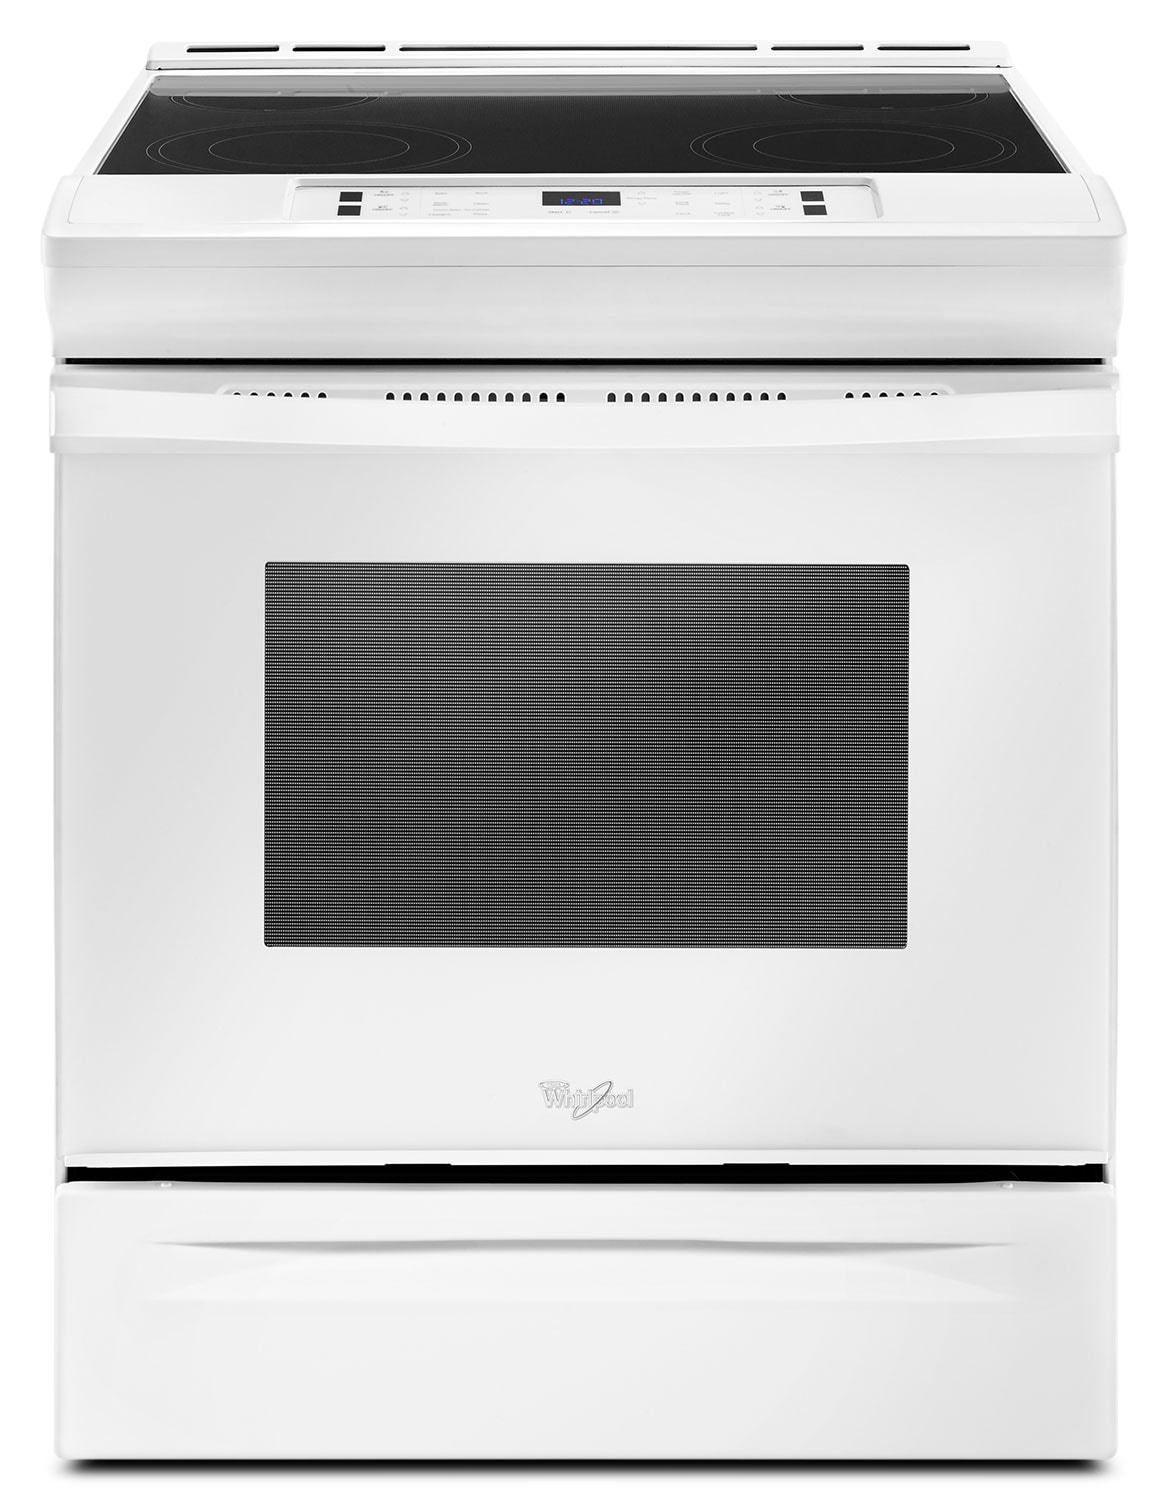 Whirlpool White Slide-In Electric Range (4.8 Cu. Ft.) - YWEE510S0FW